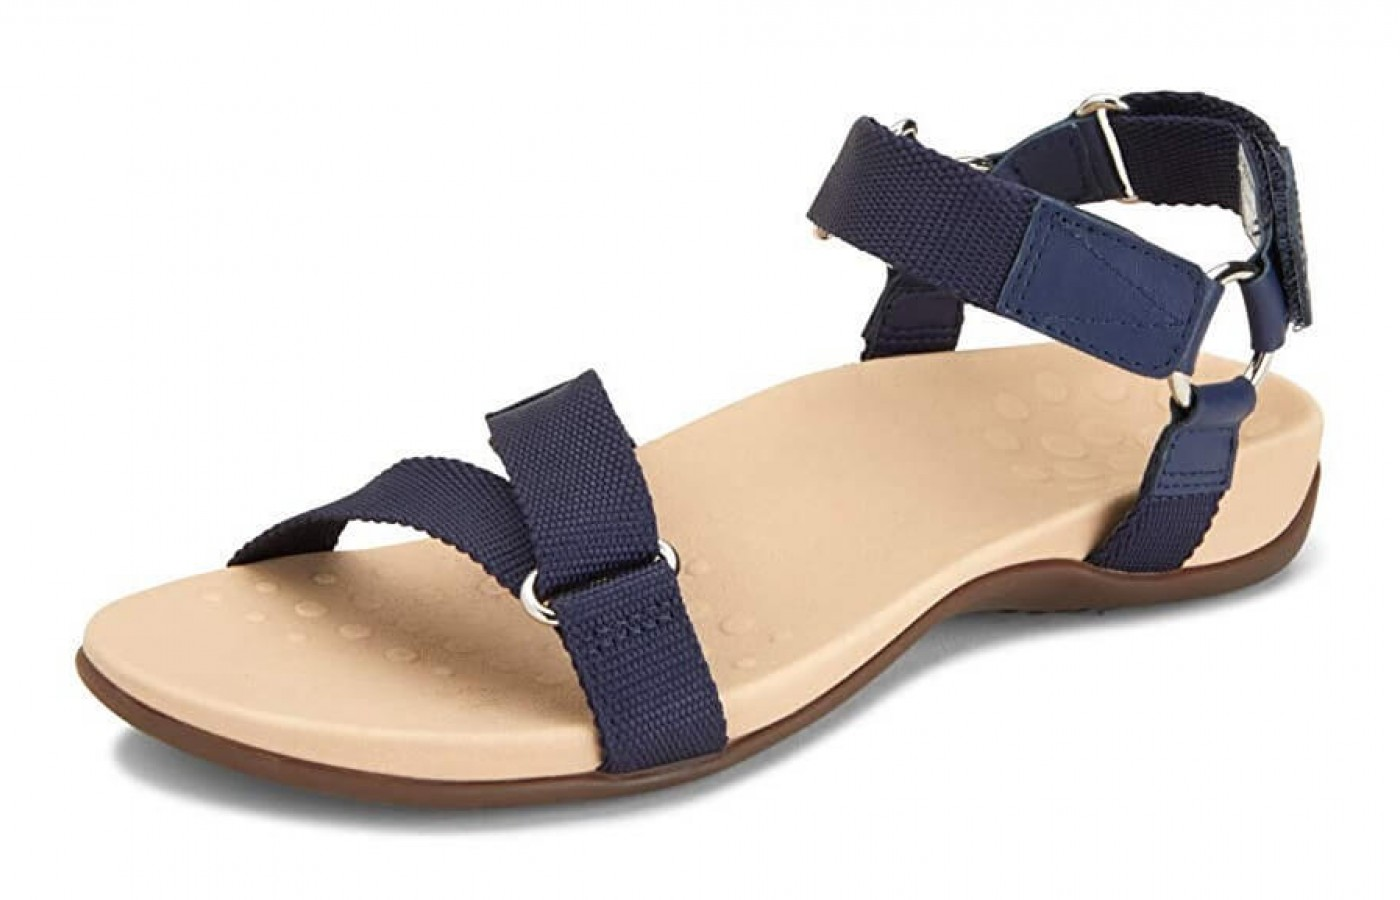 73df7a915dc Vionic Rest Candace Sandal Reviewed   Rated in 2019